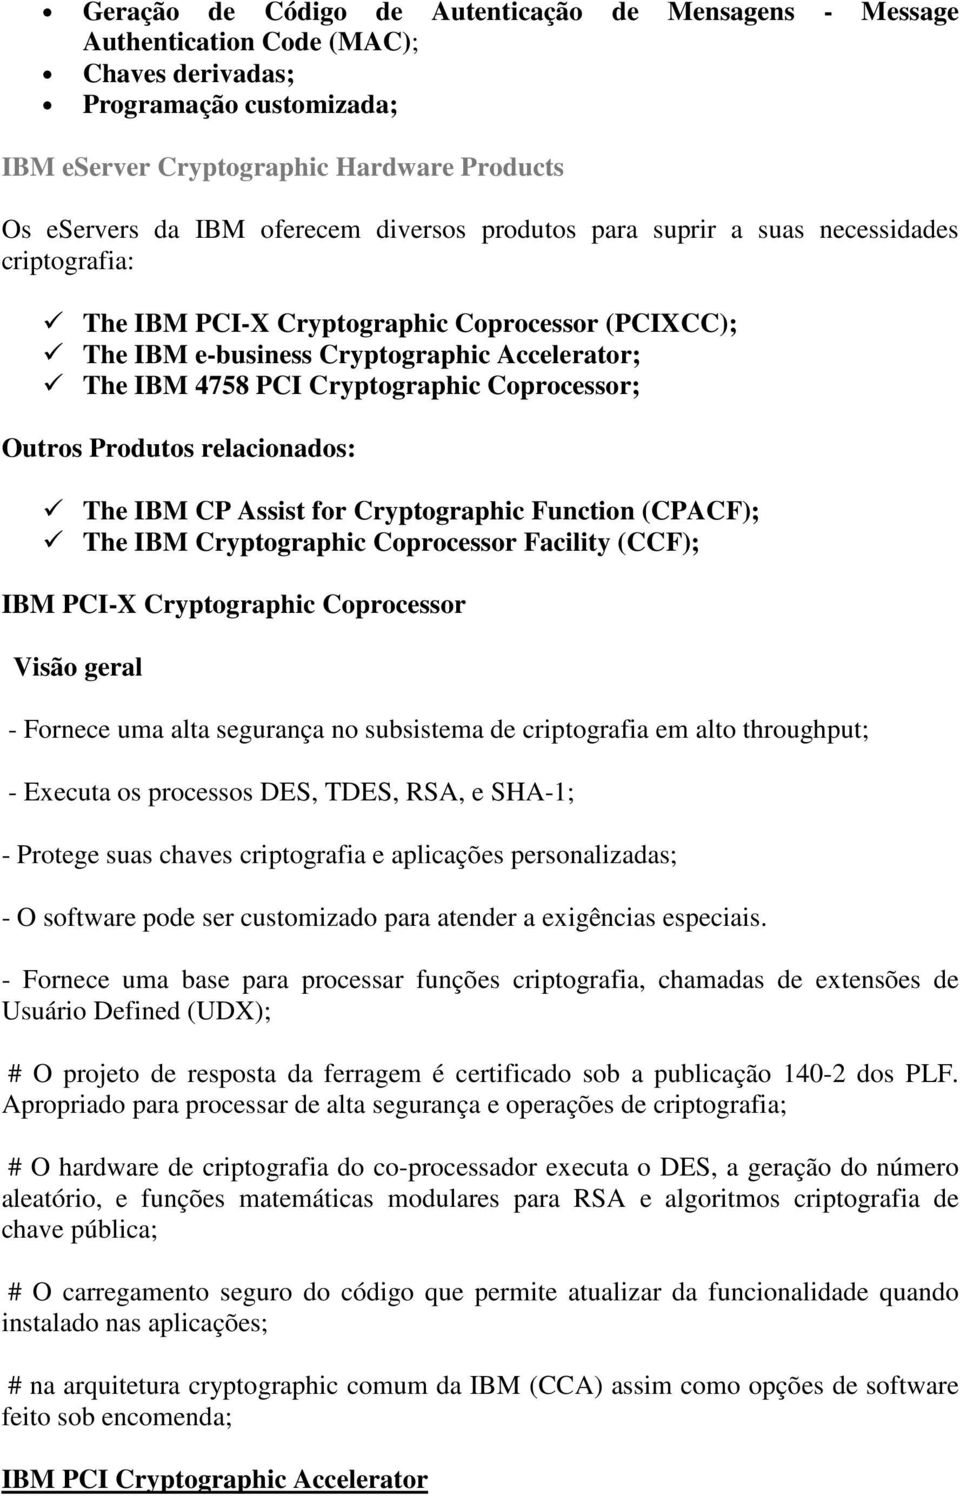 Coprocessor; Outros Produtos relacionados: The IBM CP Assist for Cryptographic Function (CPACF); The IBM Cryptographic Coprocessor Facility (CCF); IBM PCI-X Cryptographic Coprocessor Visão geral -